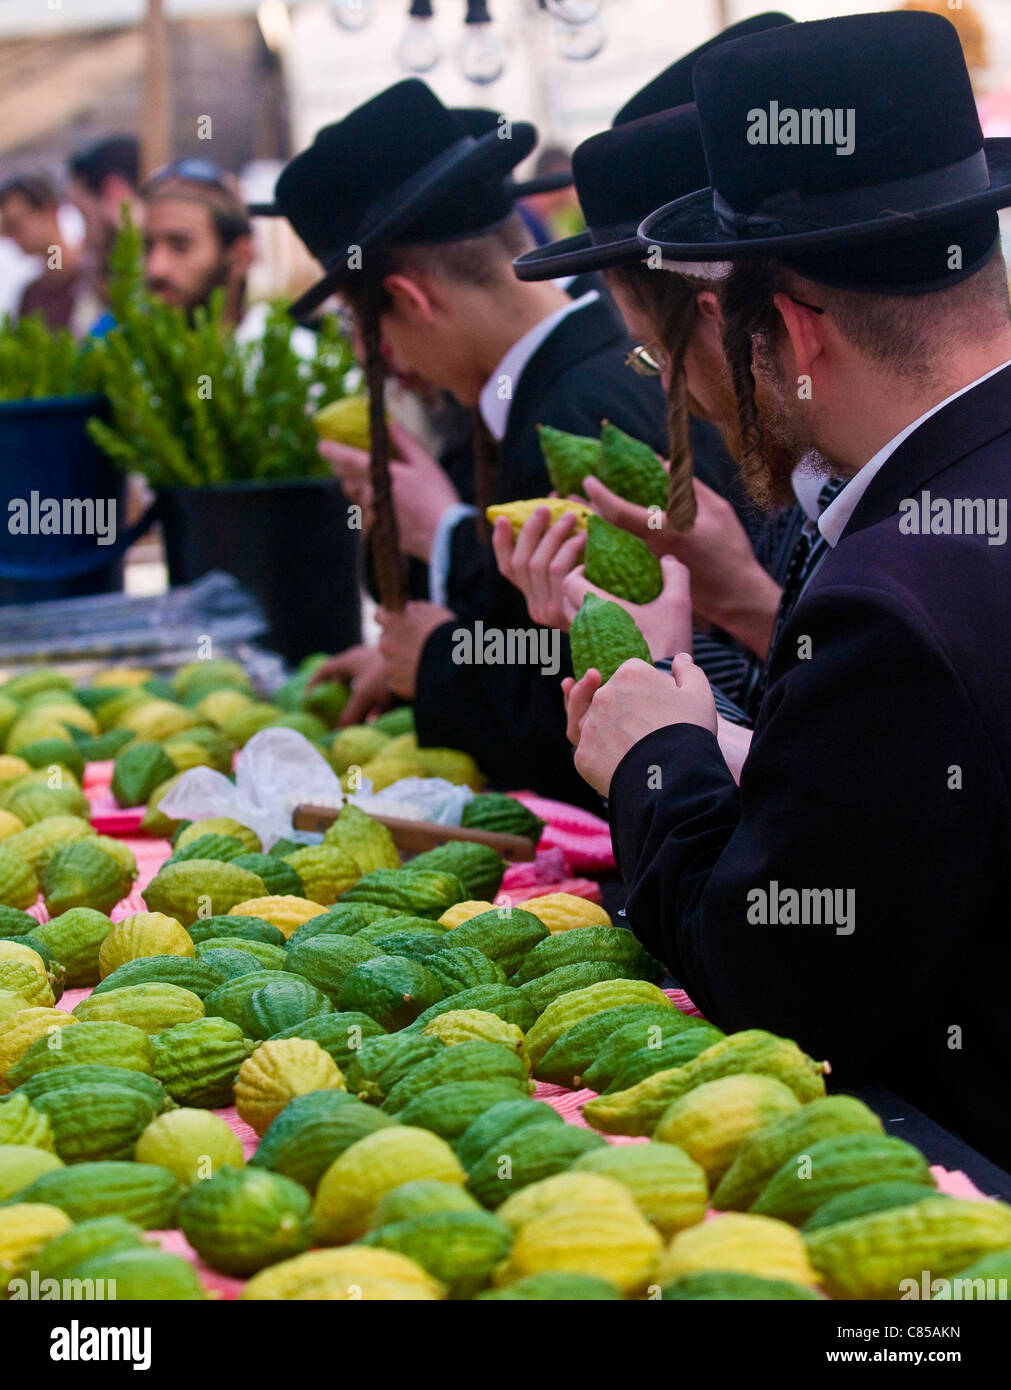 An ultra-orthodox Jewish men inspects an 'Etrog' in the 'Four species' market in Jerusalem Israel - Stock Image